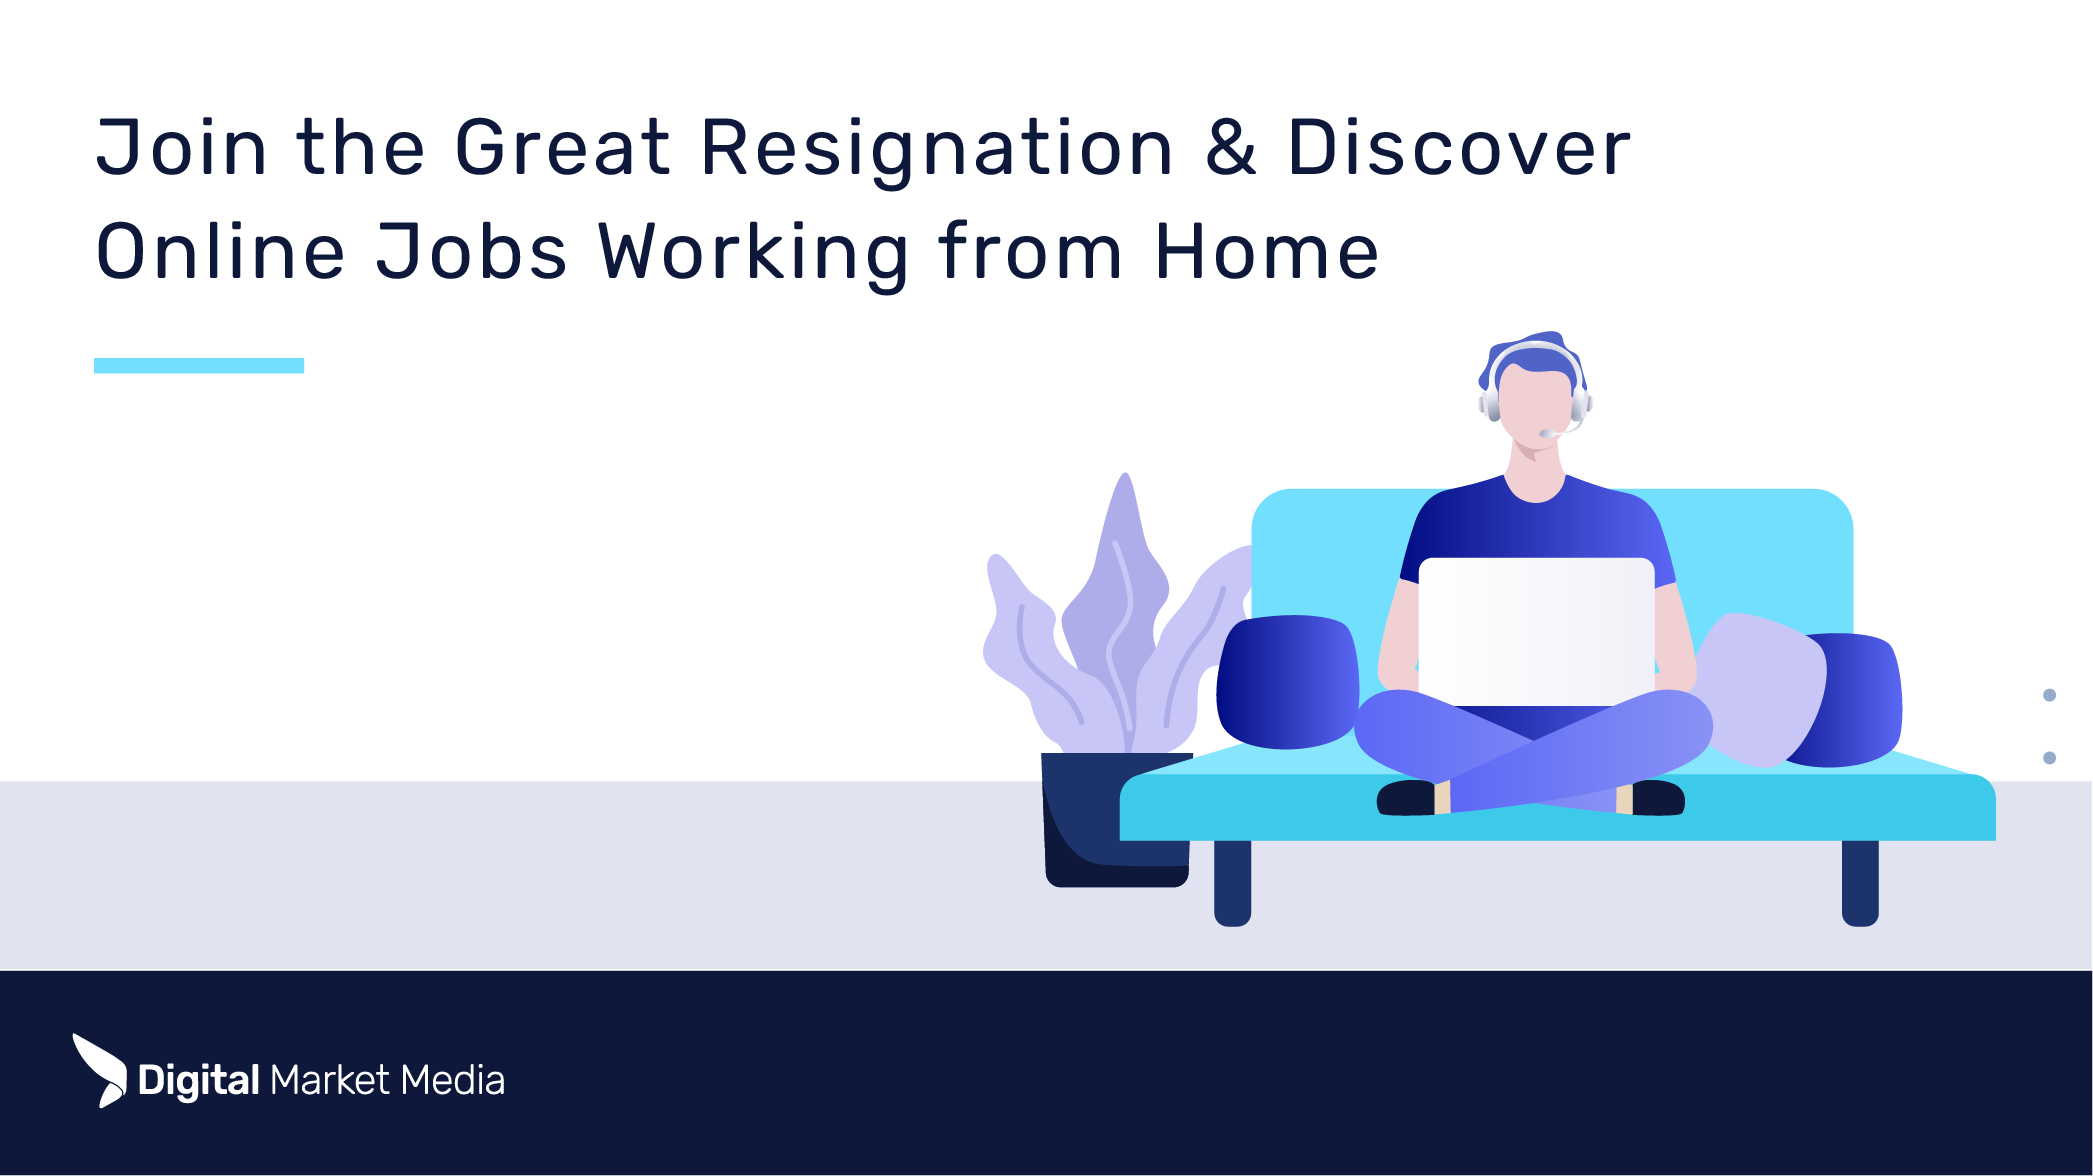 Join the Great Resignation and Discover Online Jobs Working from Home